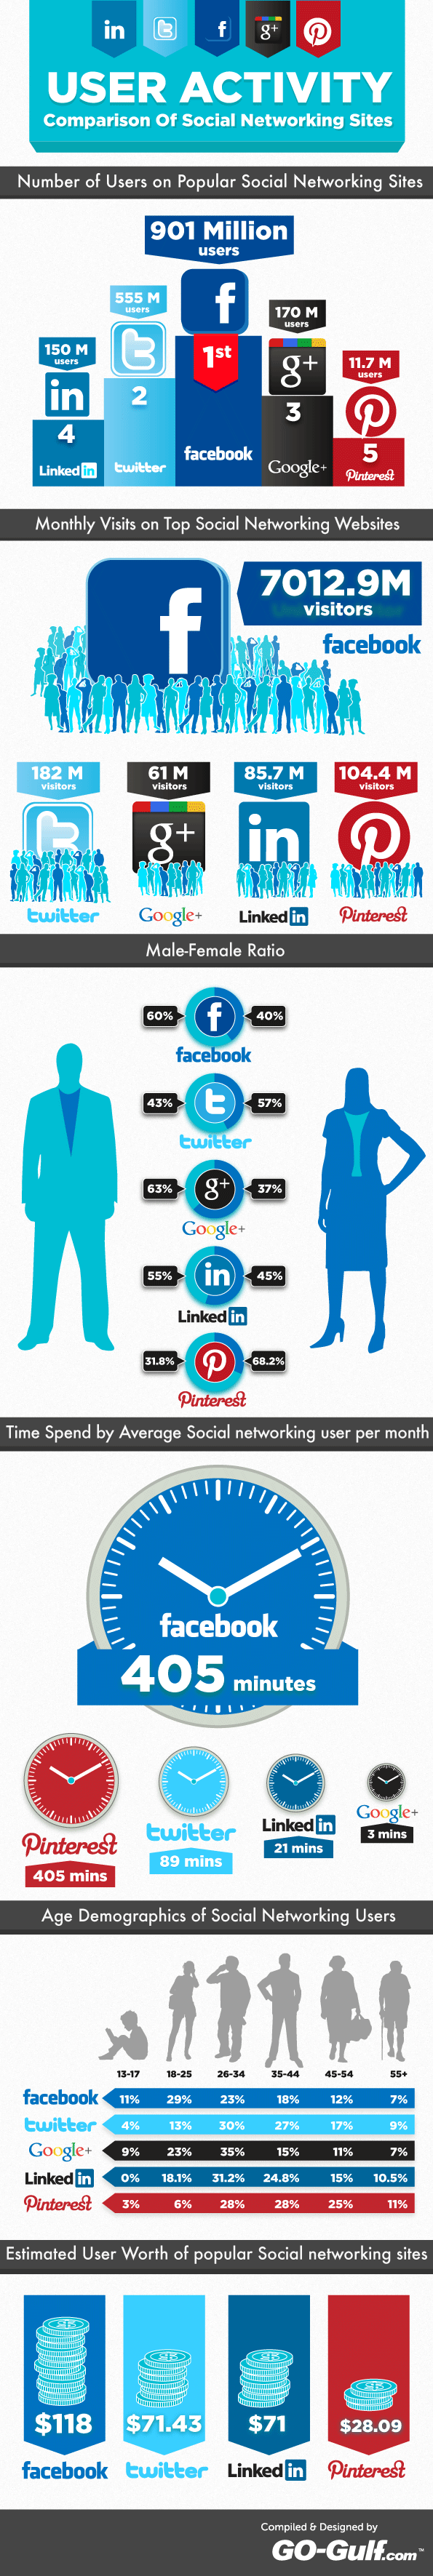 Social Networks Broken Down By Demographic [Infographic]